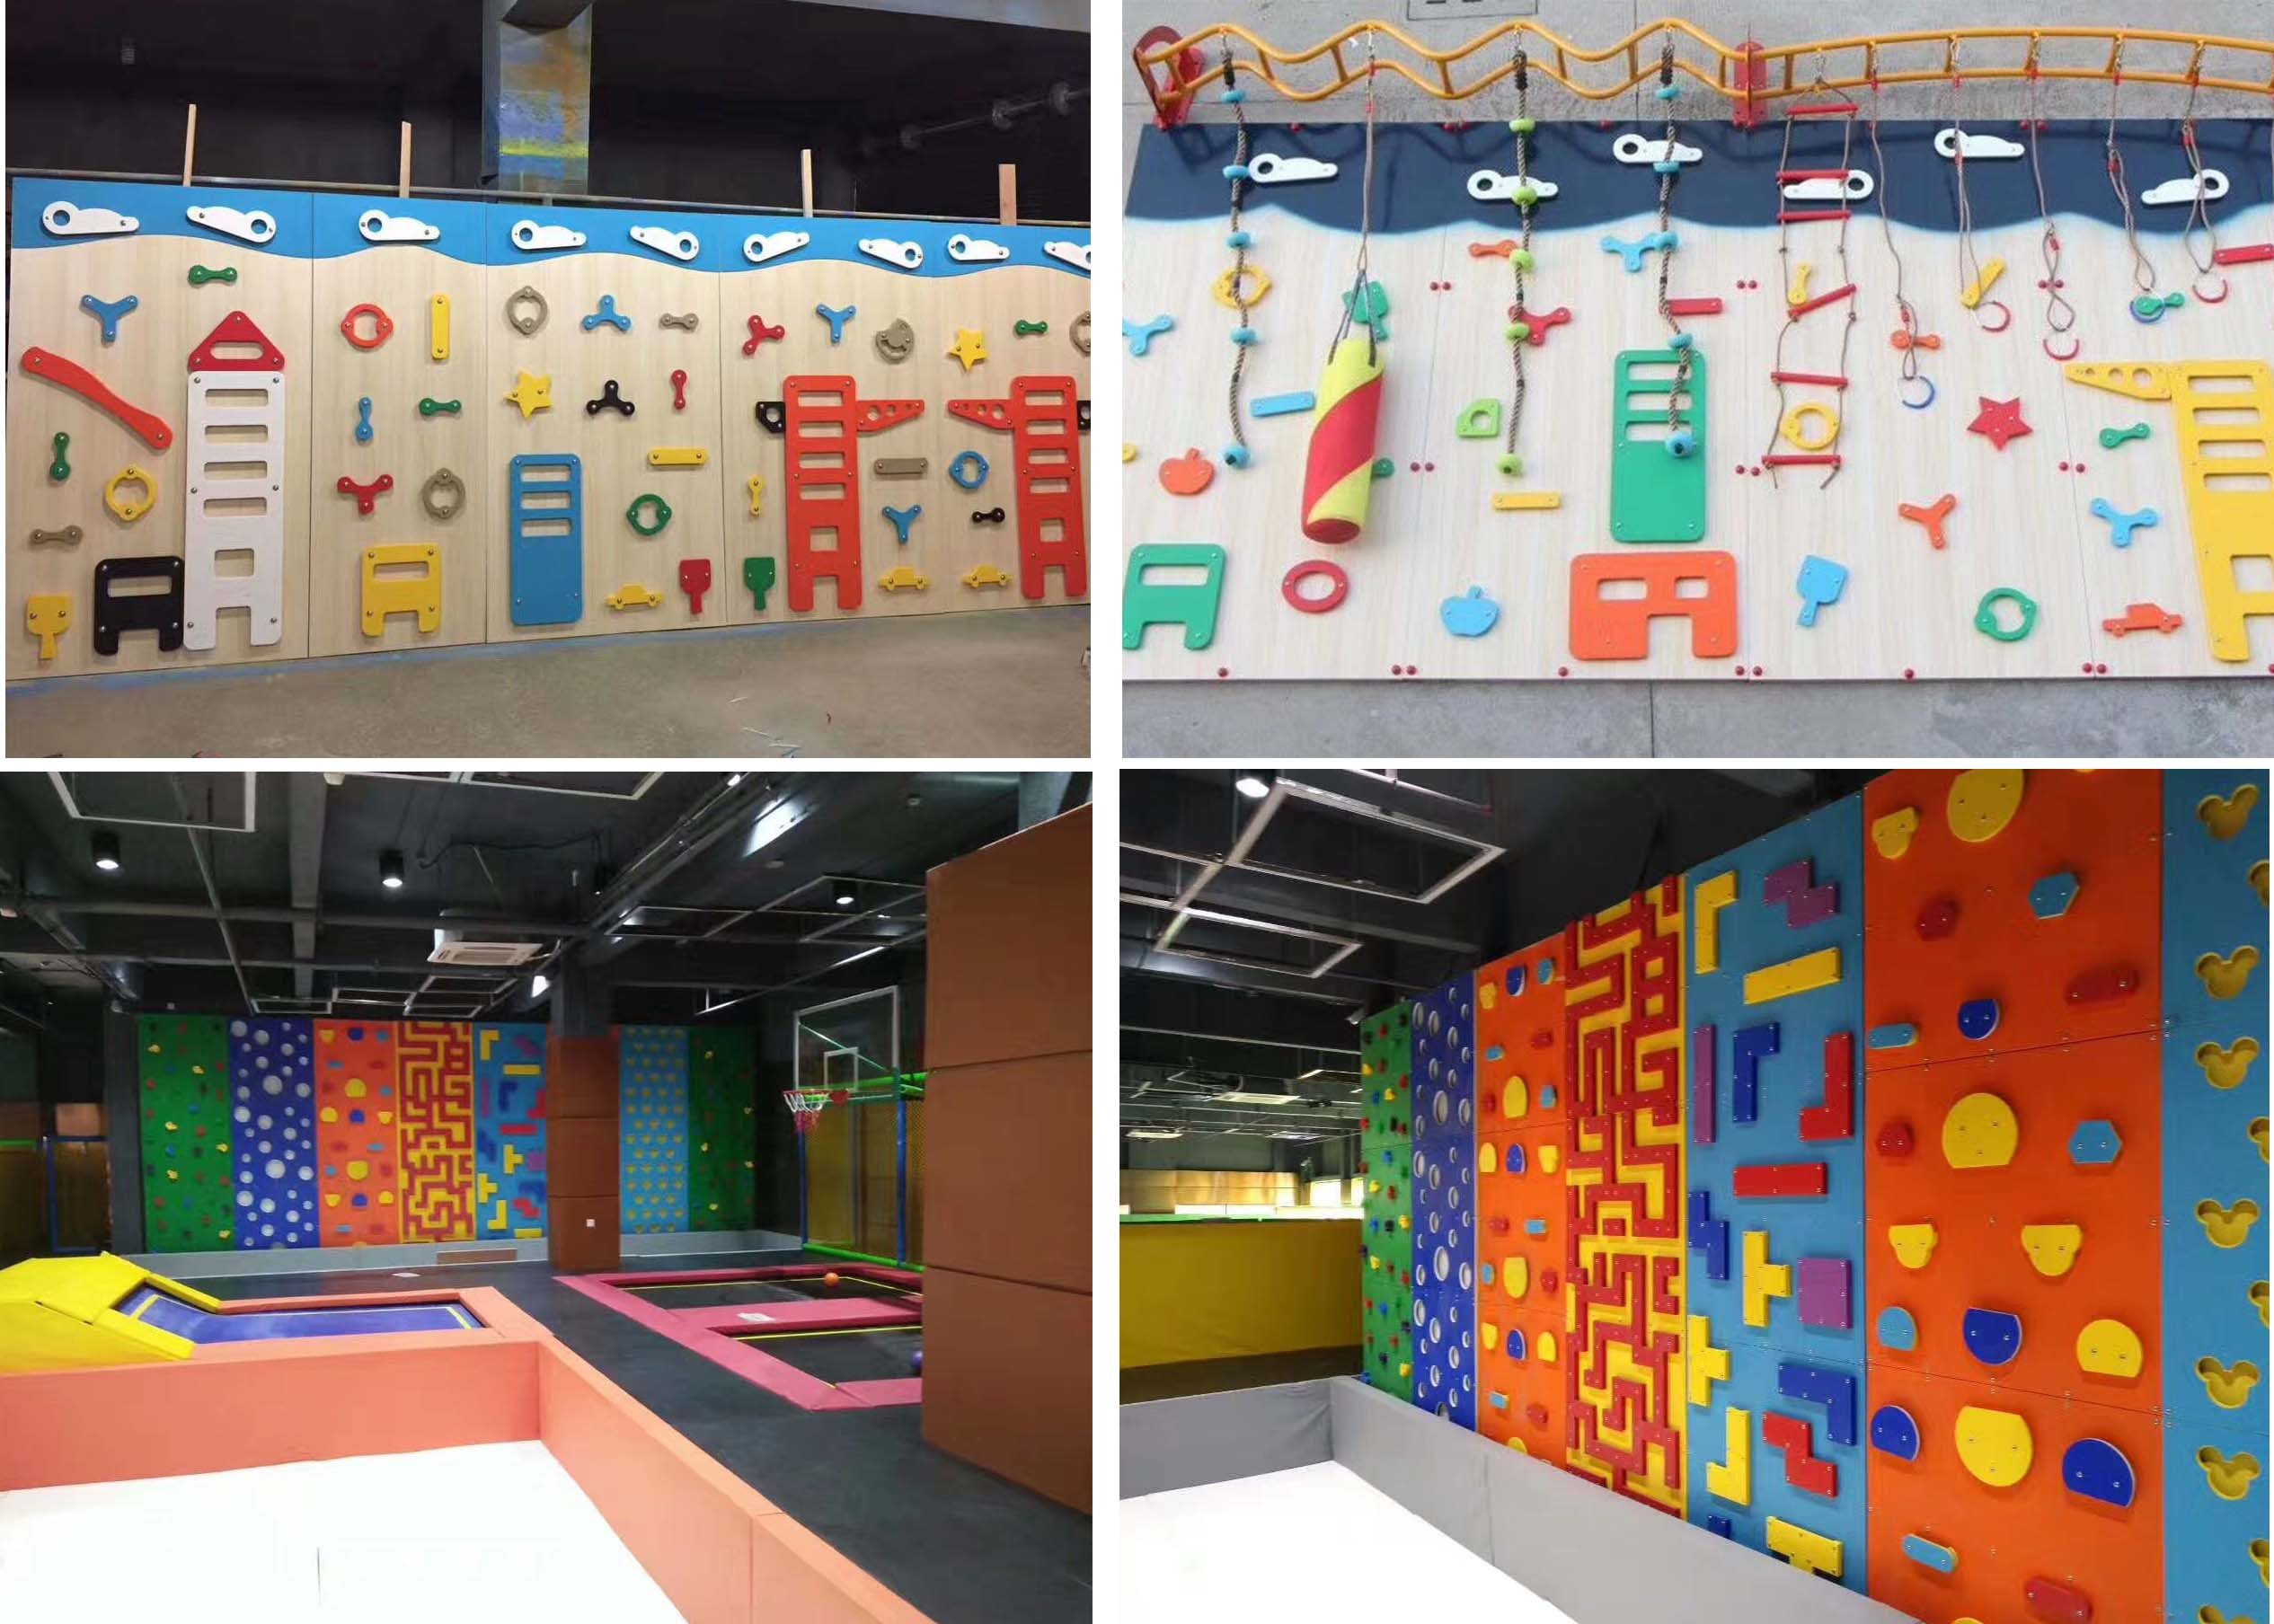 Climbing wall the latest indoor playground equipment